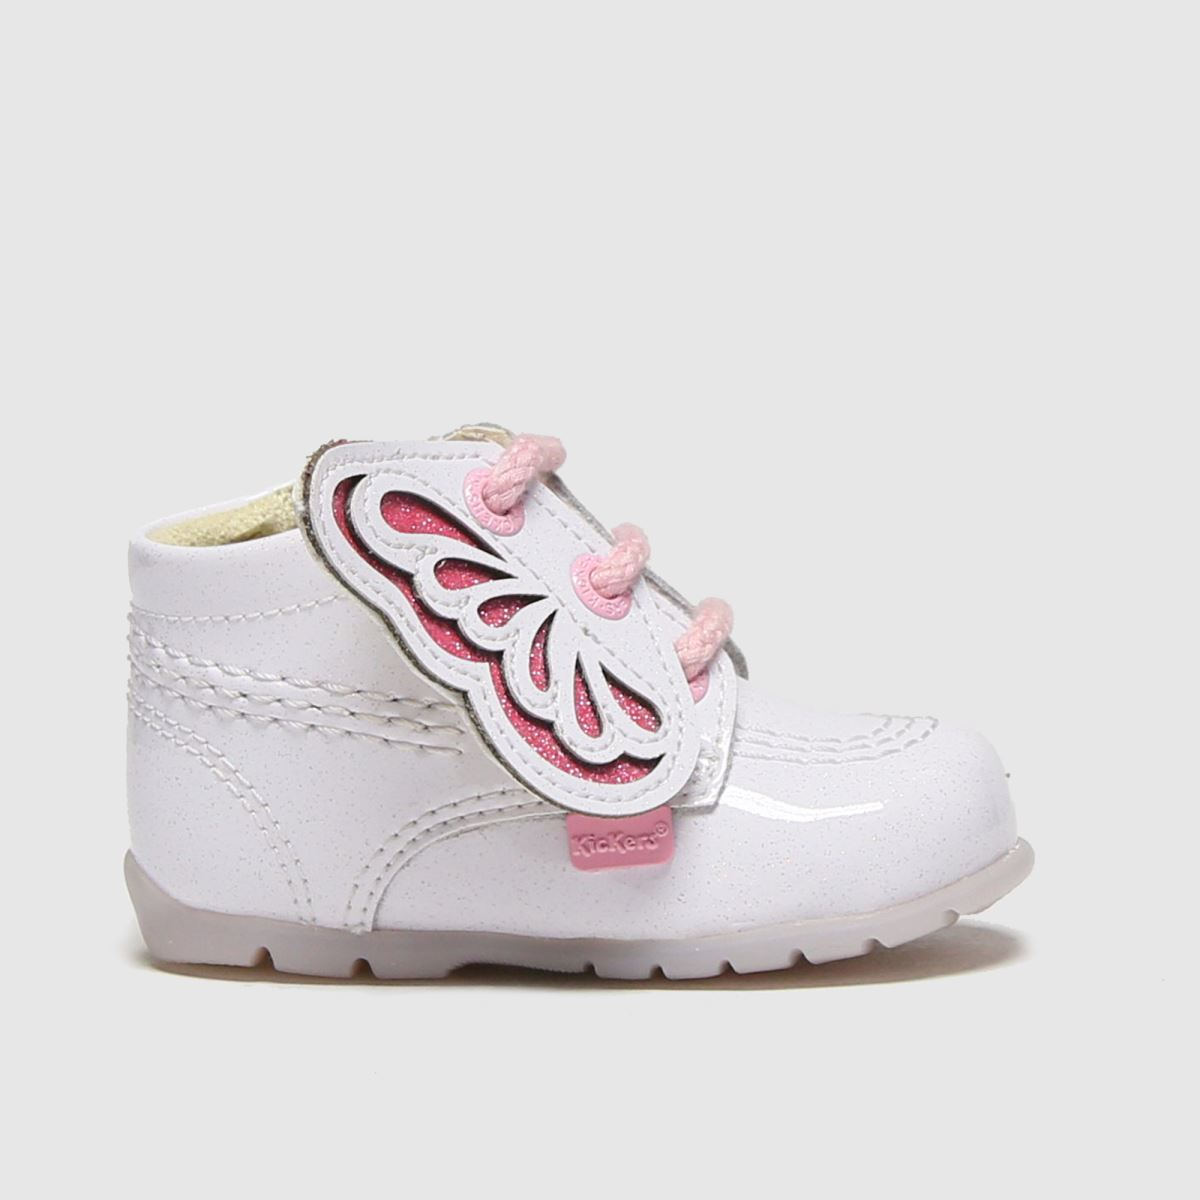 Kickers White & Pink Faeries Mini Crib Shoes Baby